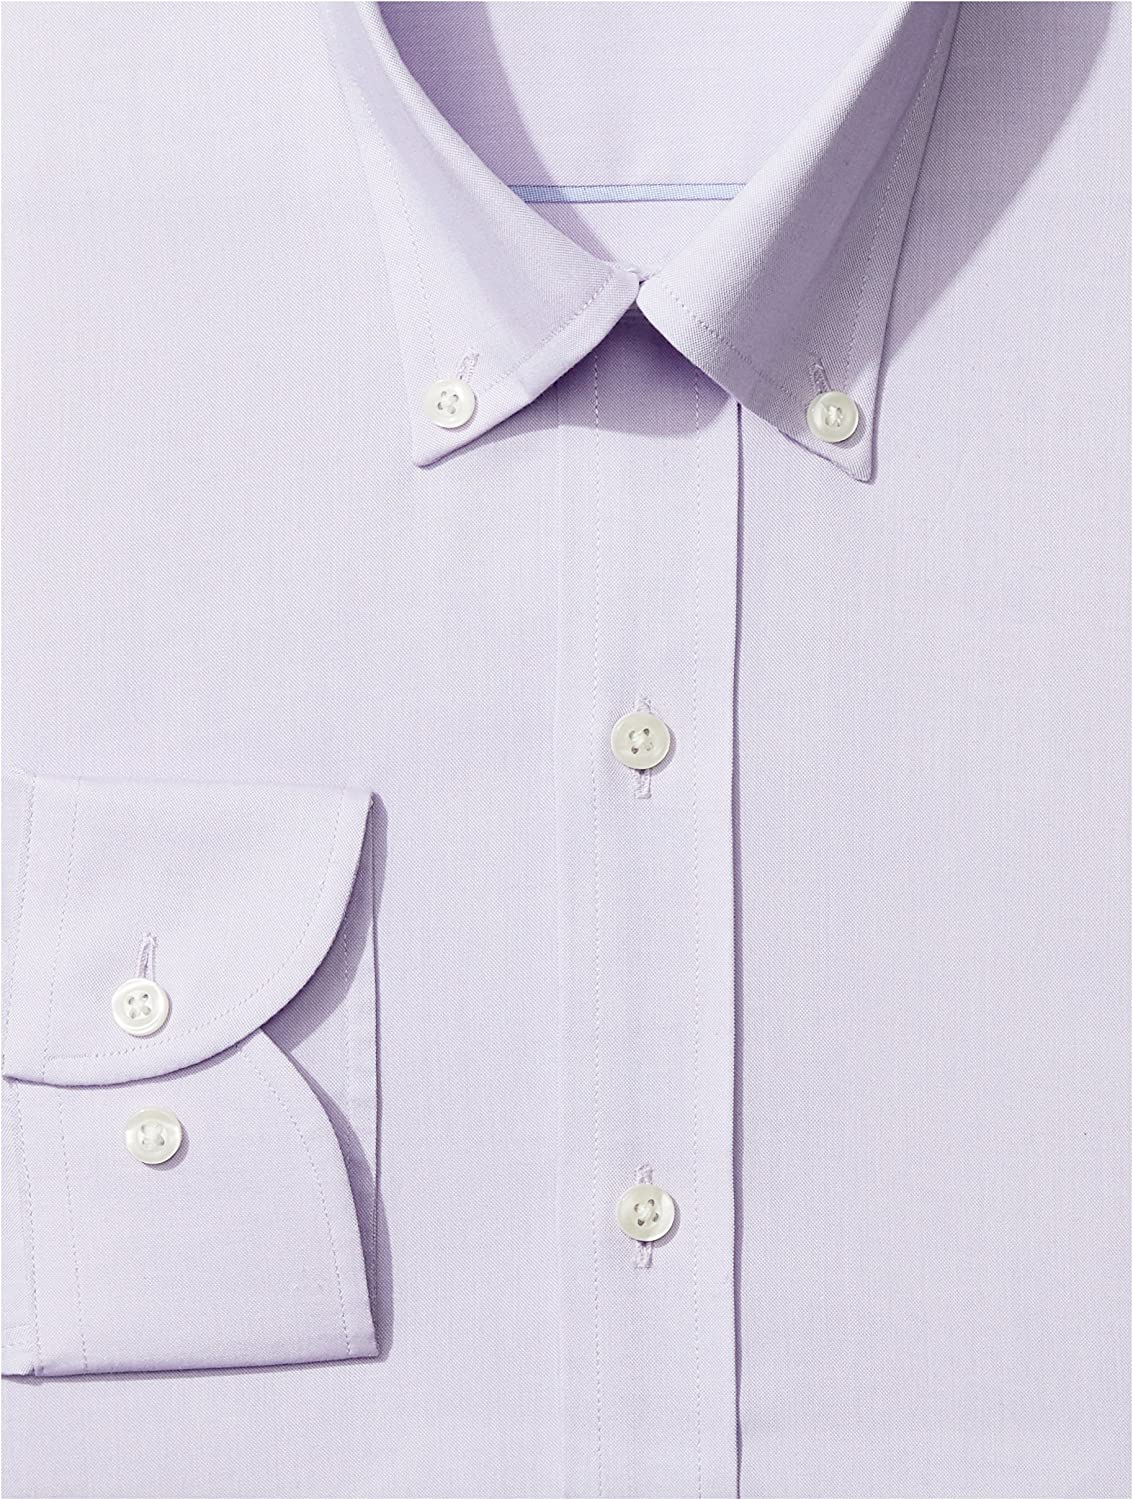 Brand Supima Cotton Non-Iron BUTTONED DOWN Mens Slim Fit Button-Collar Solid Pinpoint Dress Shirt